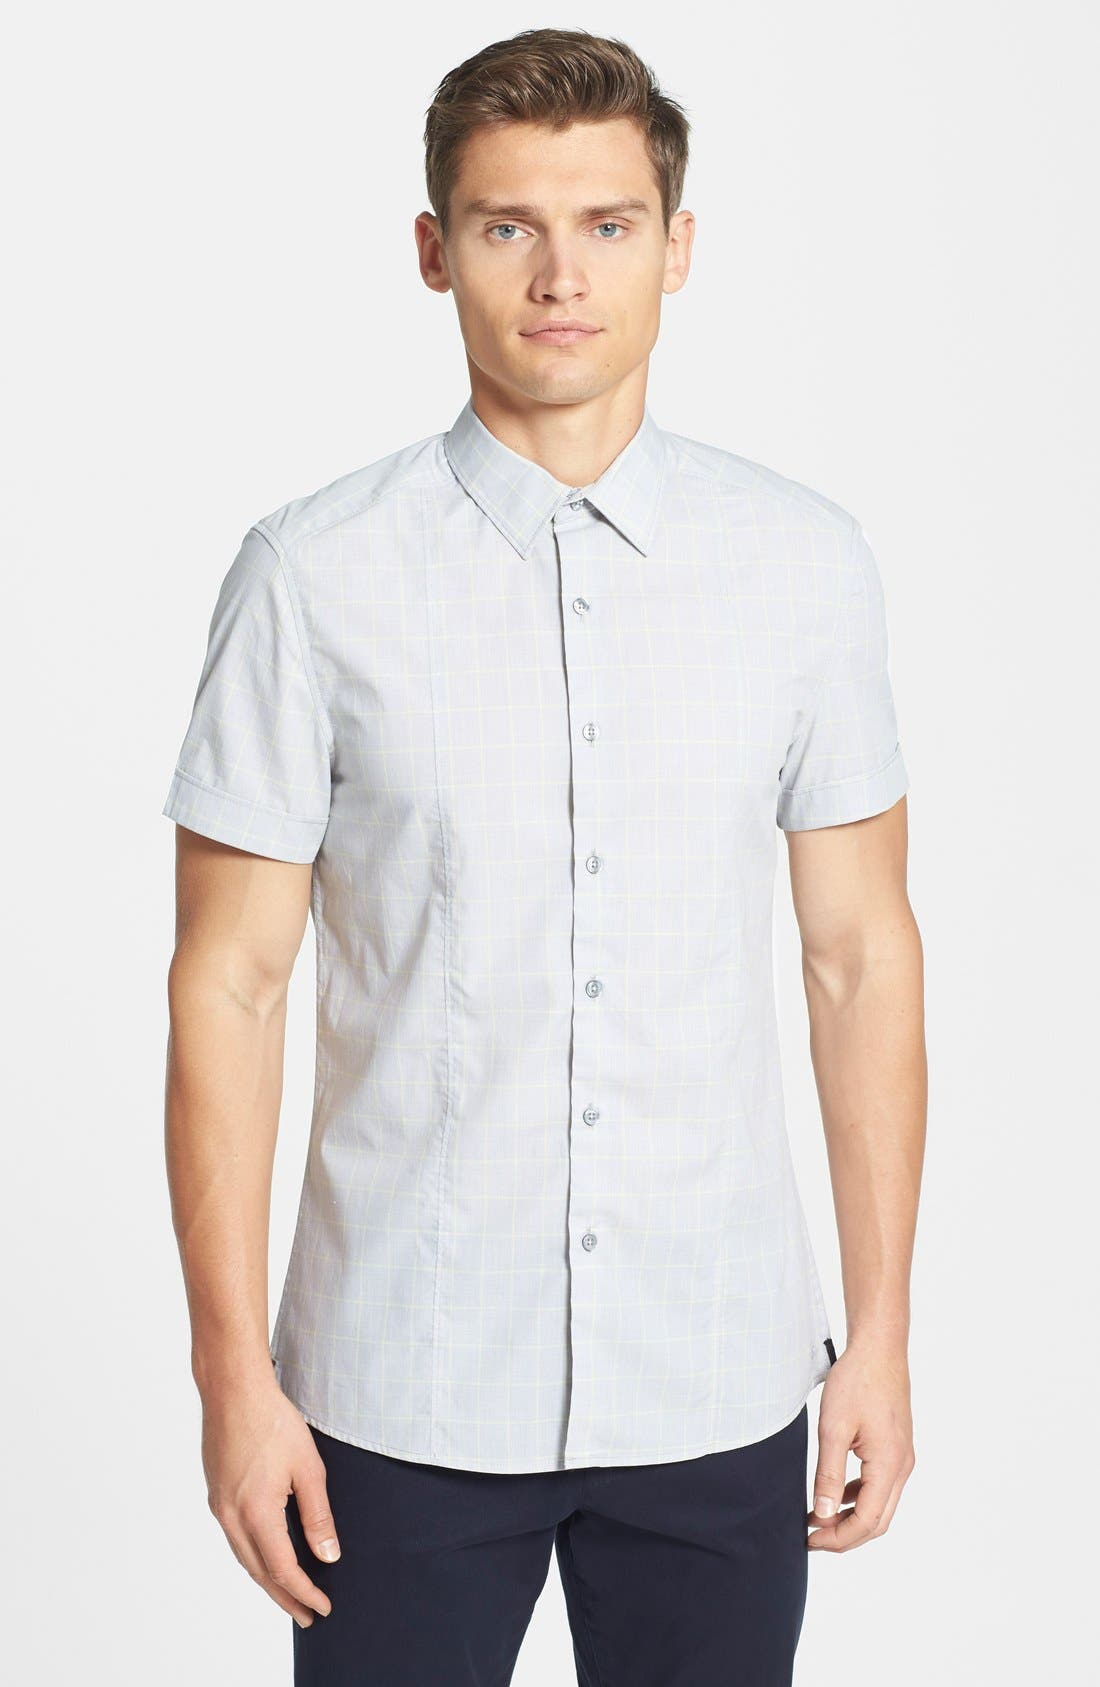 Alternate Image 1 Selected - Kenneth Cole New York Trim Fit Short Sleeve Windowpane Plaid Sport Shirt